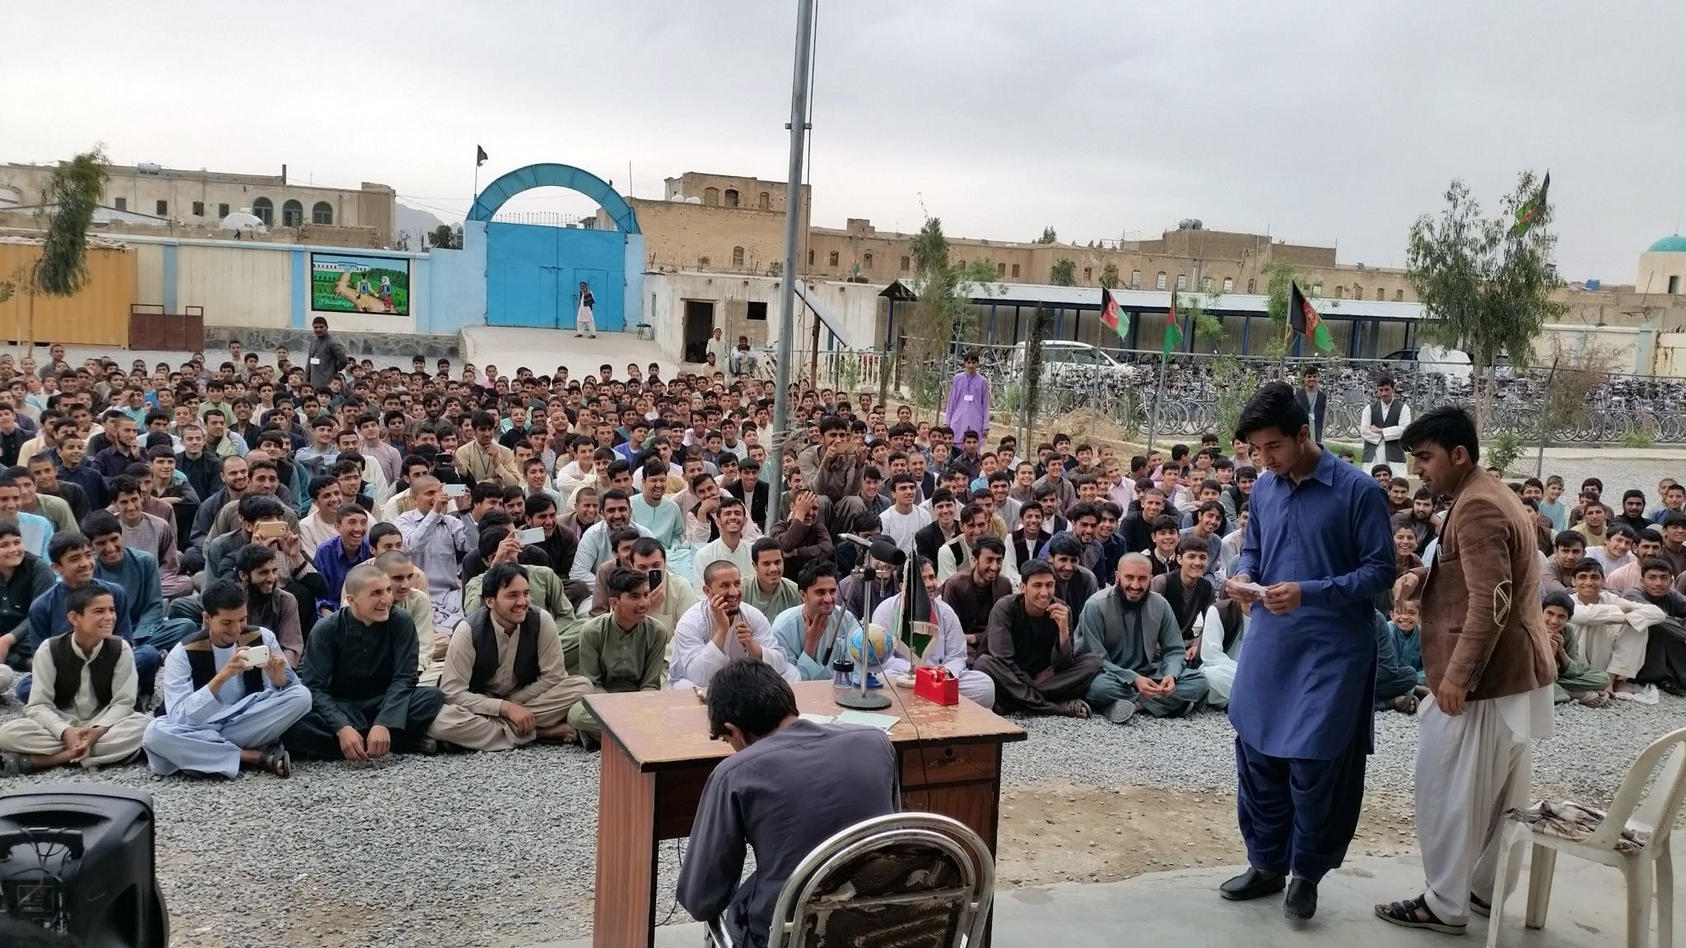 A crowd in Afghanistan's second-largest city, Kandahar, laughs during a performance by a local youth group that dramatized corruption by Afghan officials. (Photo: Bond Street Theater)